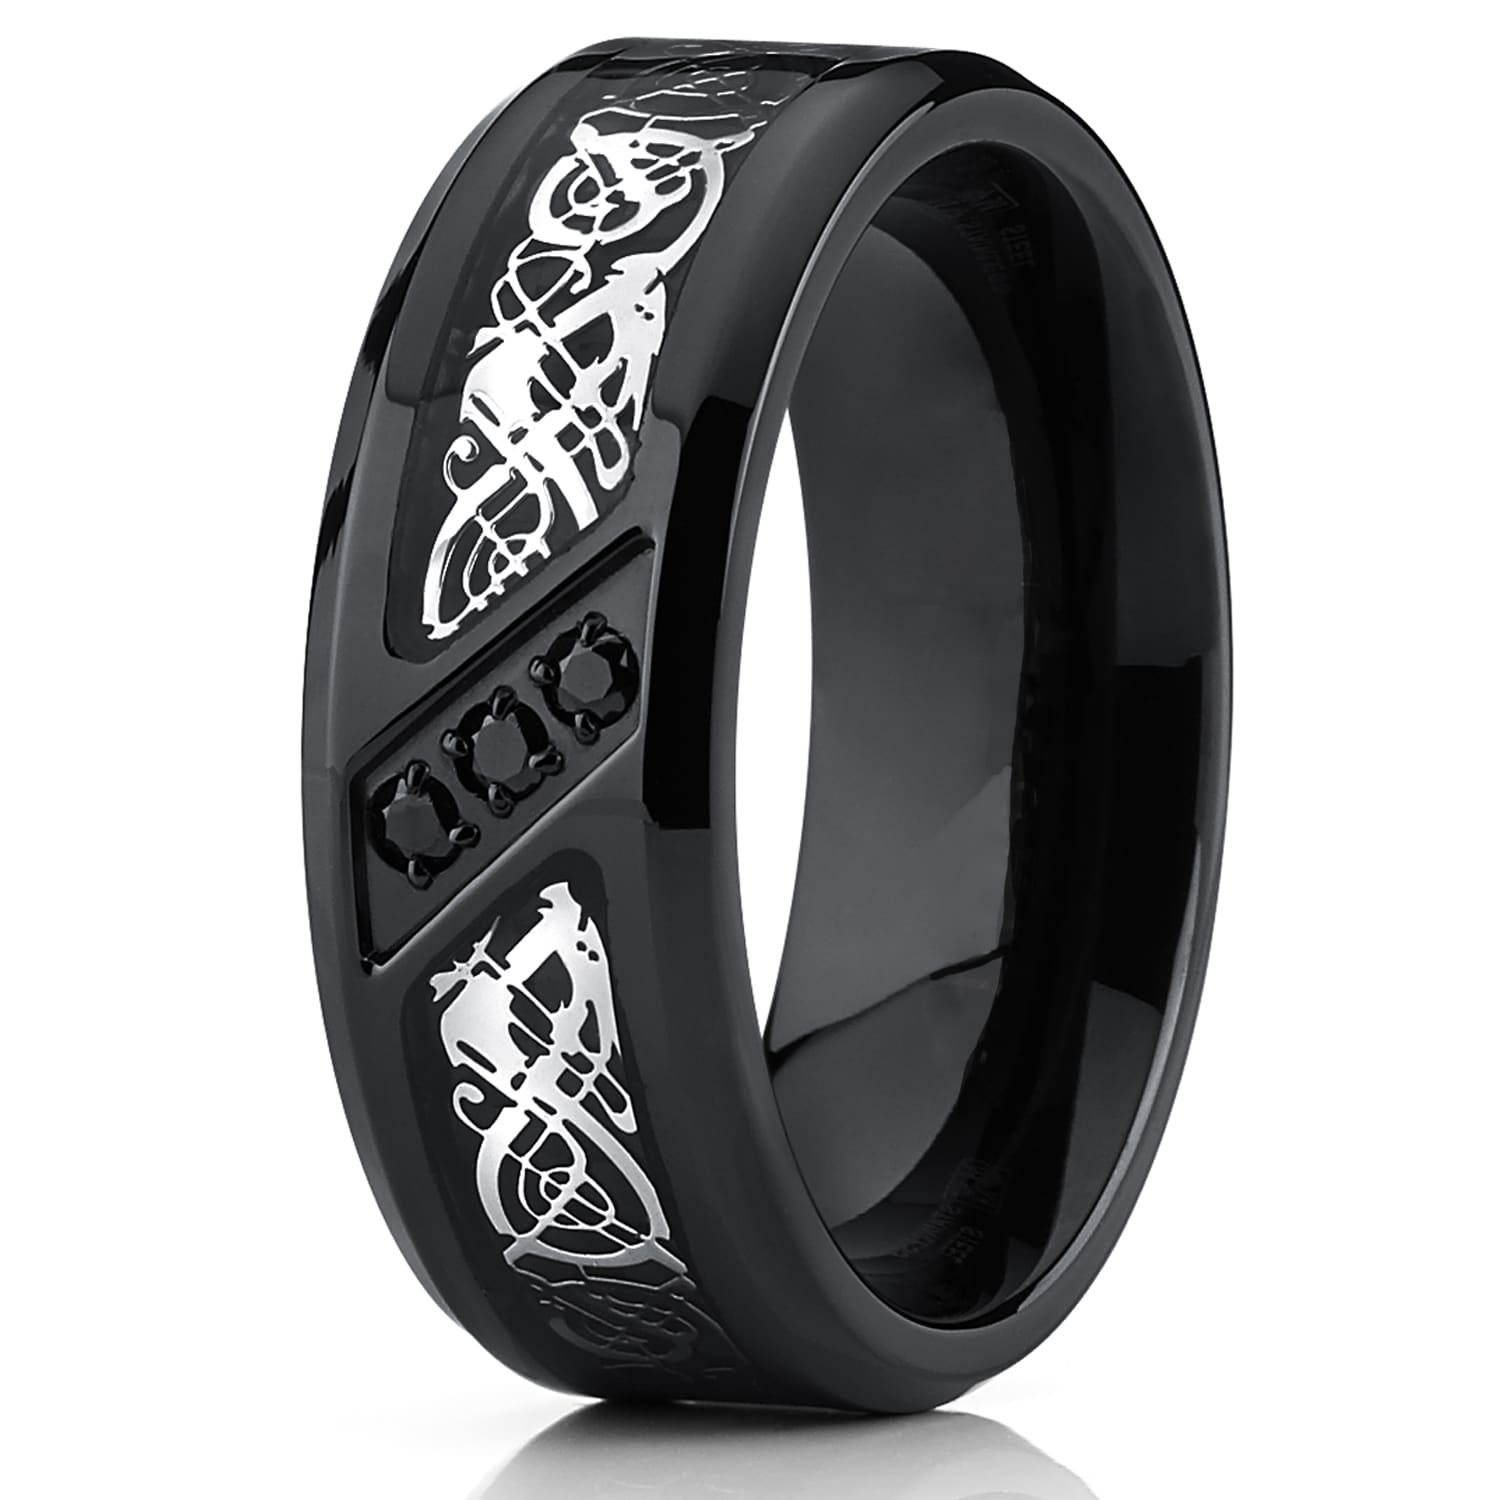 ring wedding black tungsten inlay blue rbbcfbssr s and niv bling products carbon carbide rings fiber